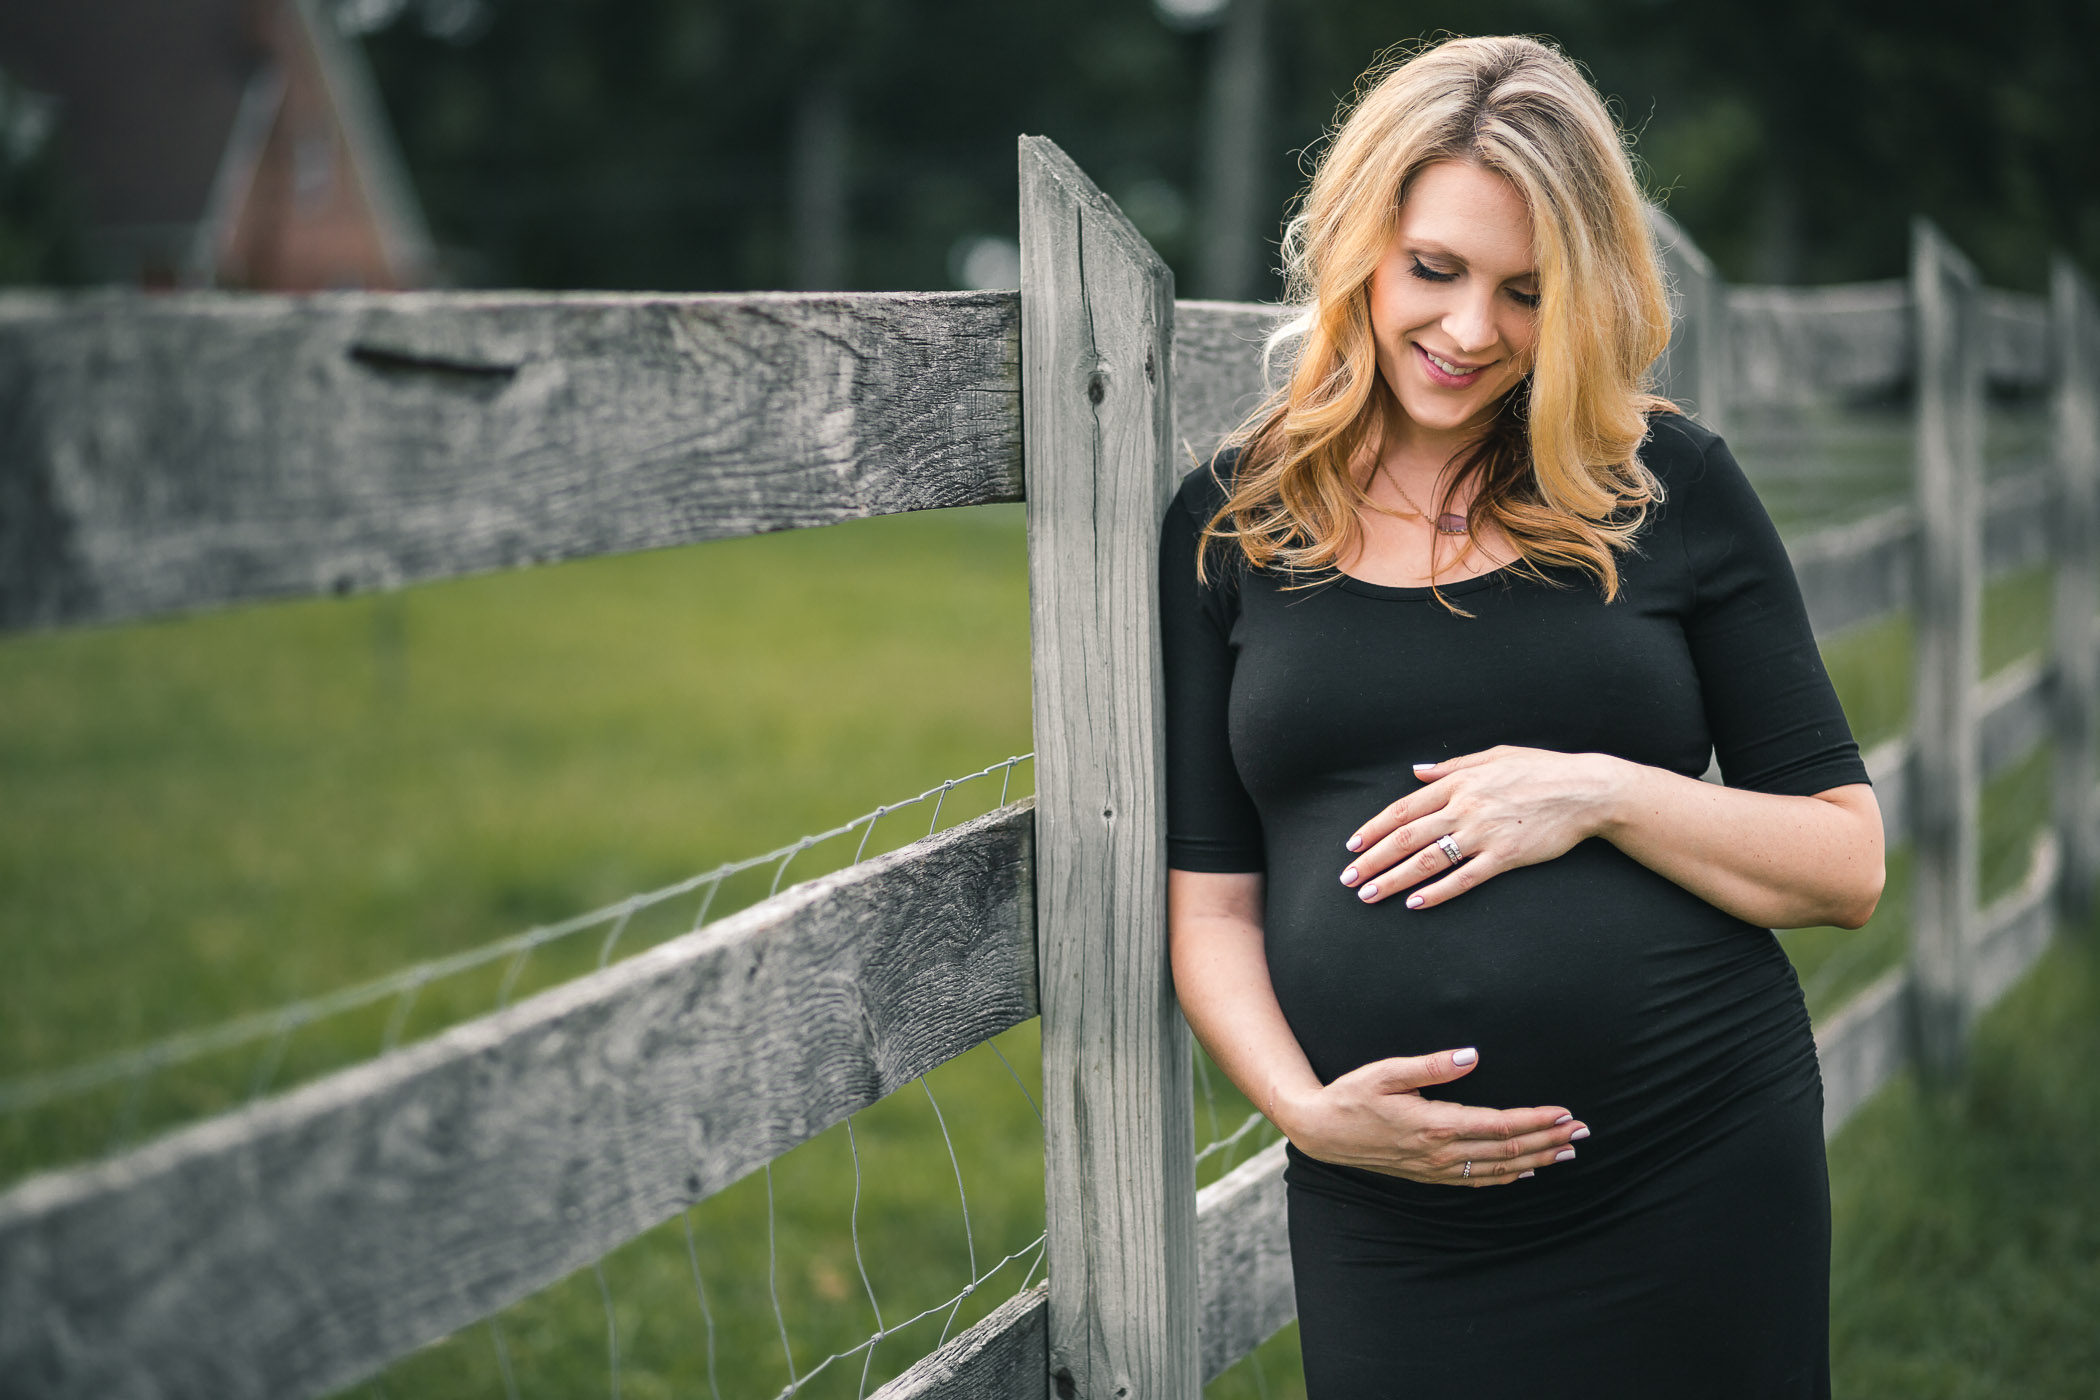 A Maternity Session from Greg Ferko at Kinder Farm Park 11